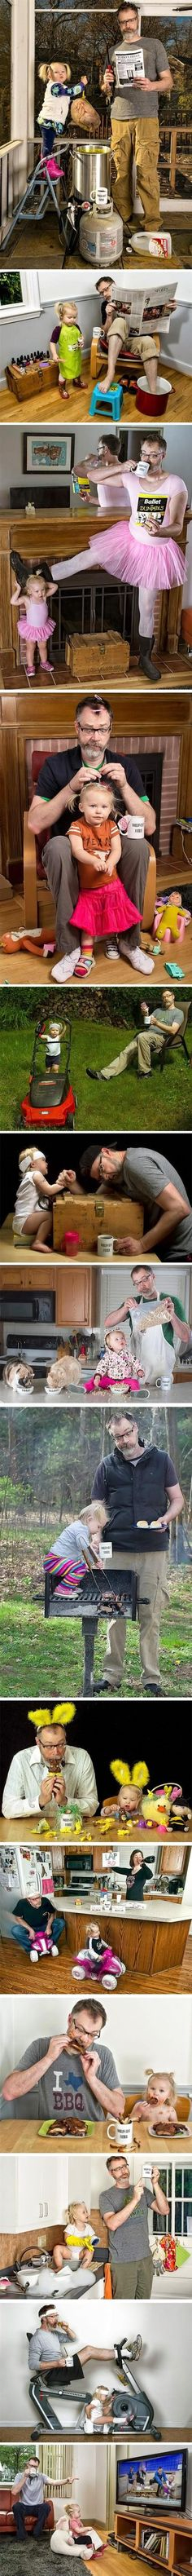 Best Dad Ever.   These pictures are hilarious